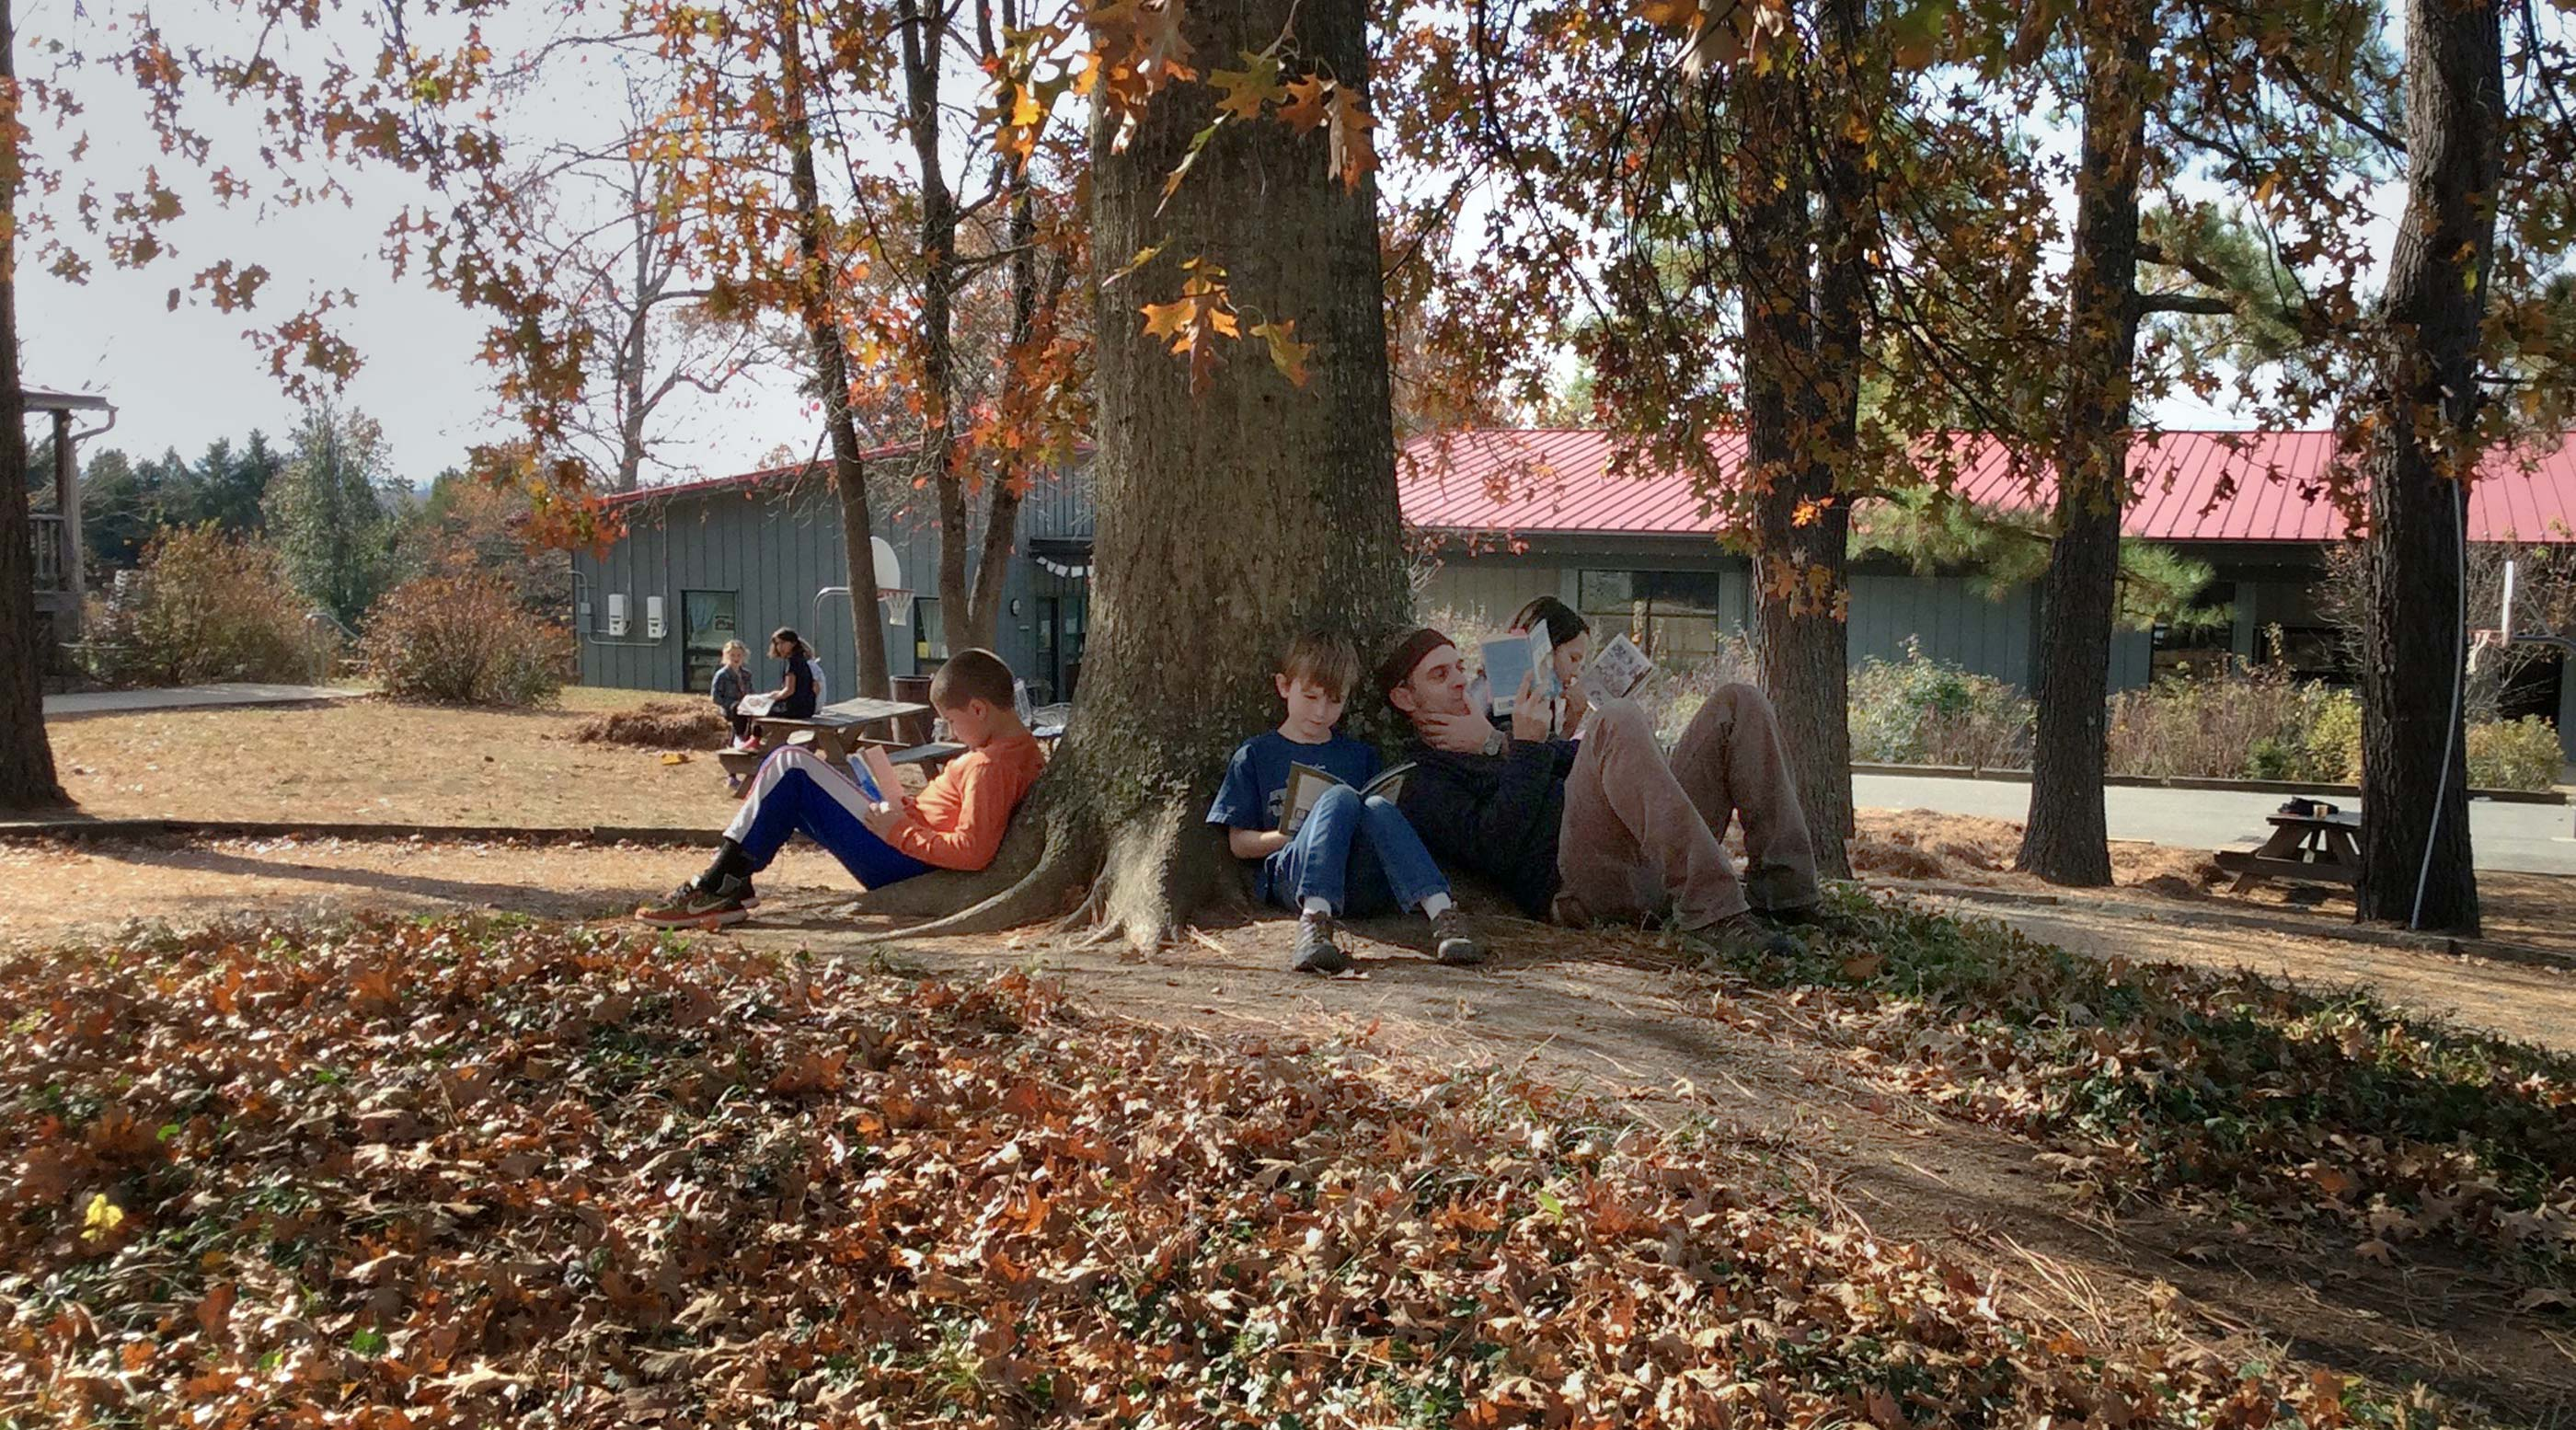 Students and their teacher read together under a tree